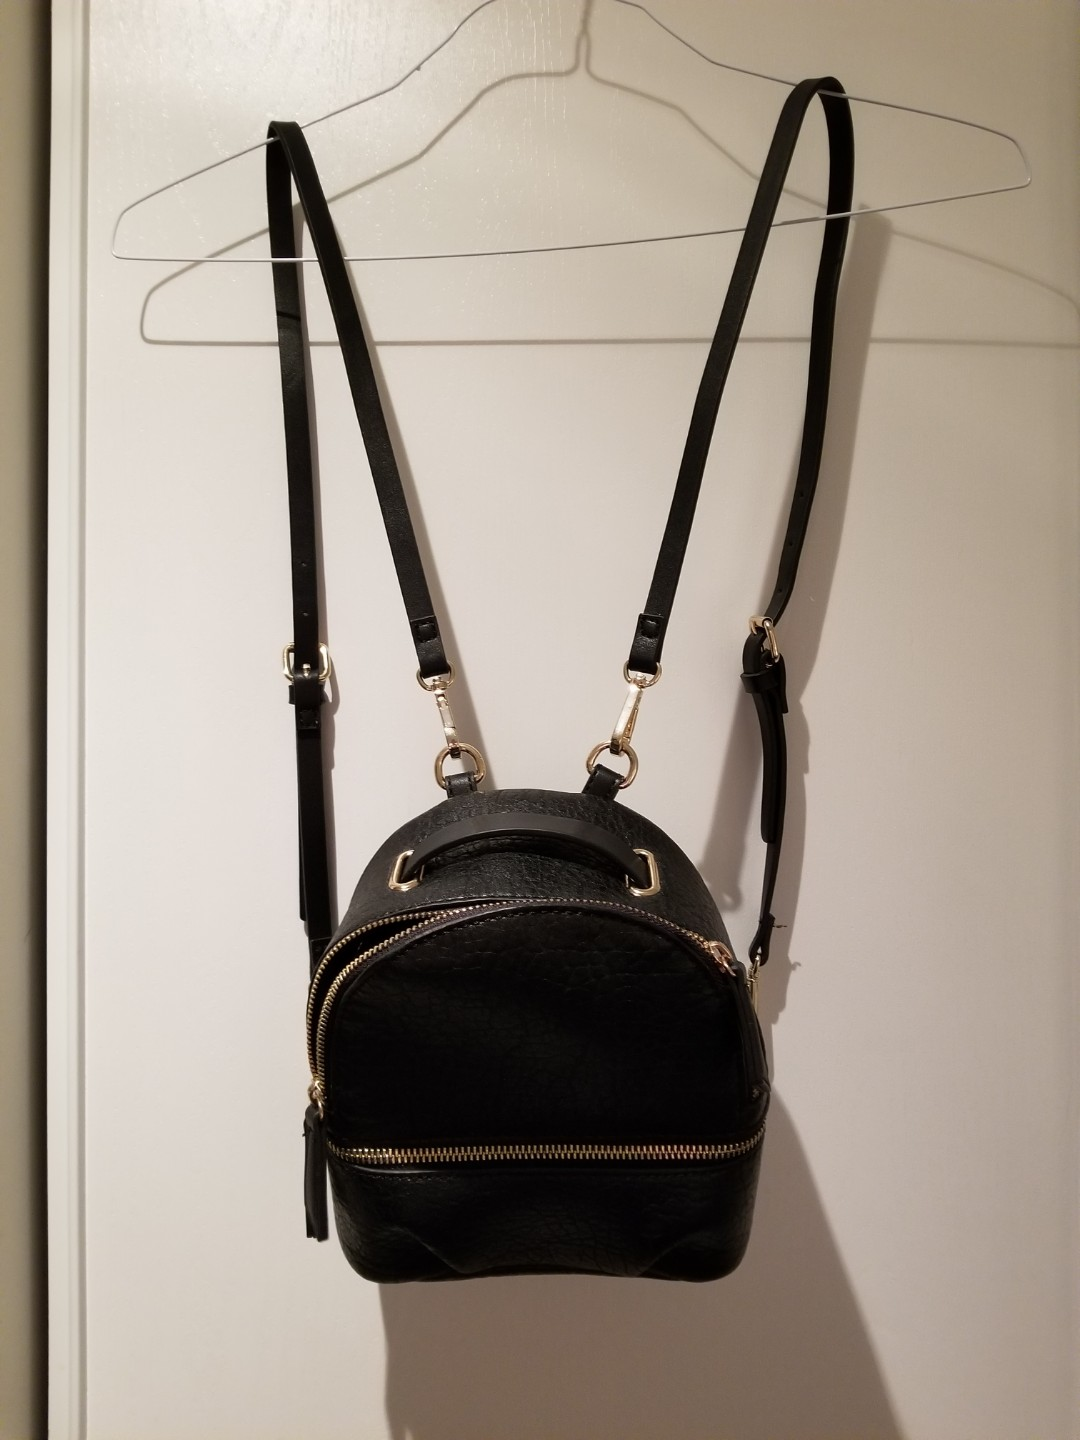 ZARA 3 WAY BAG